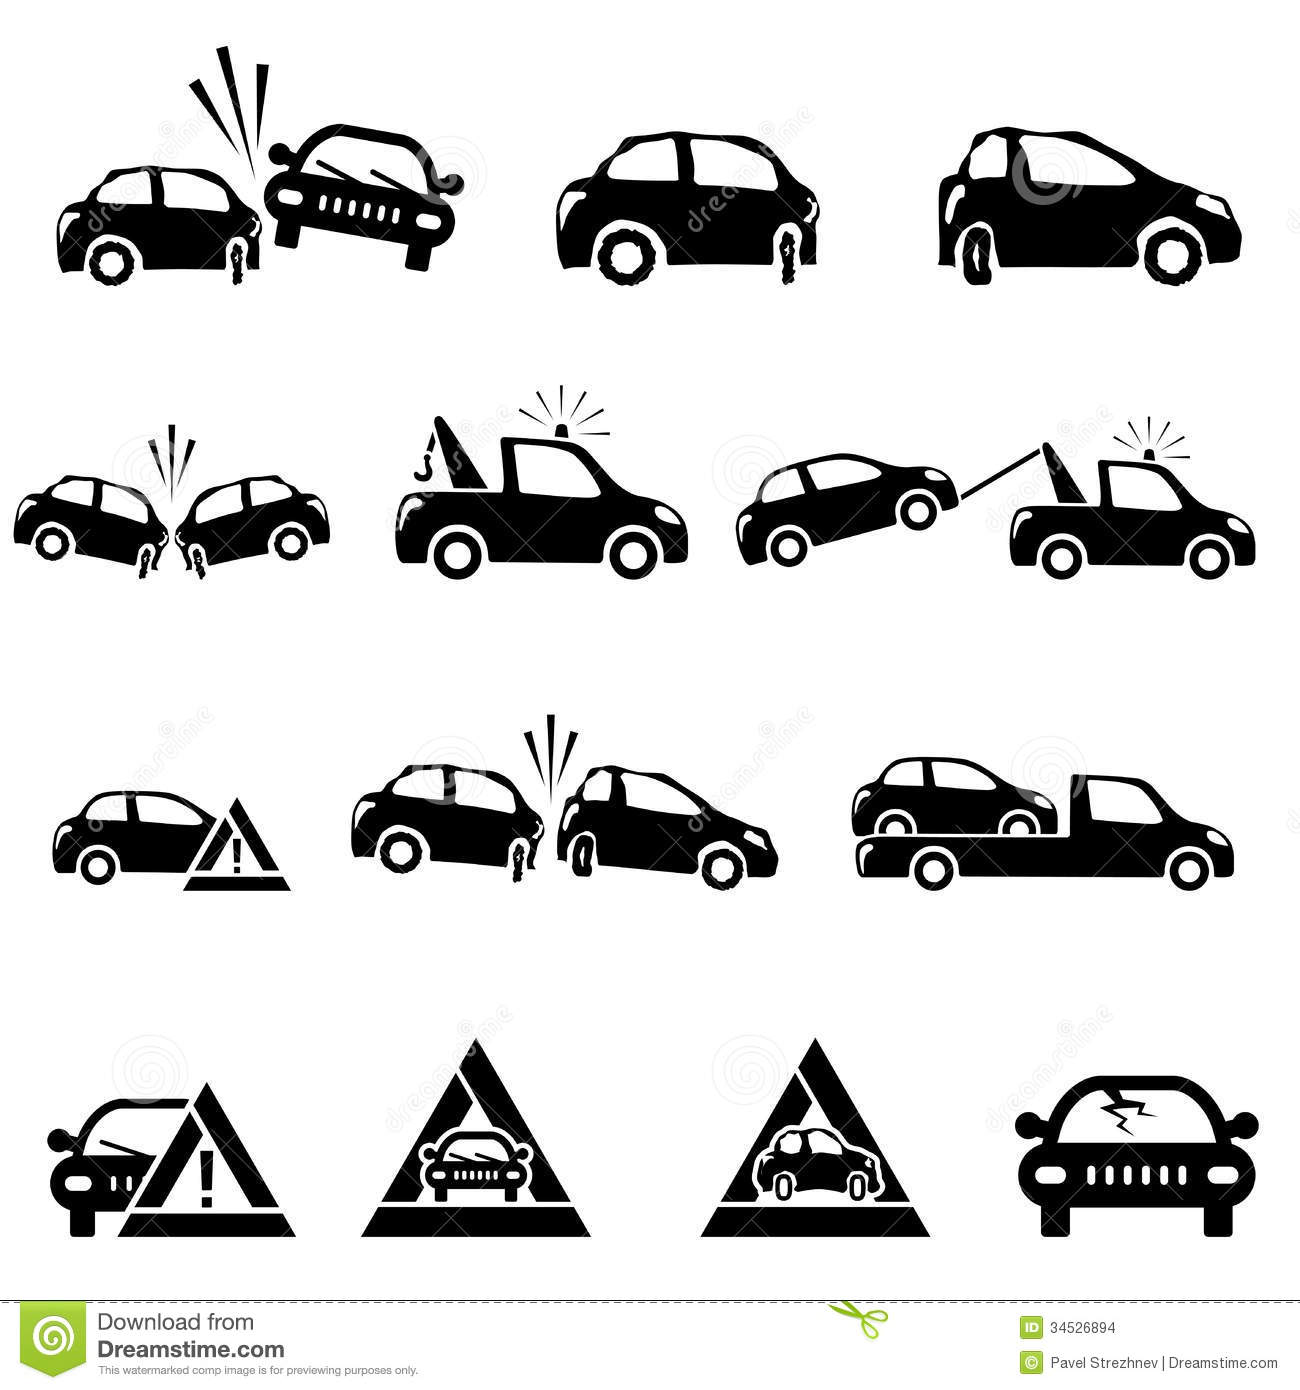 Icones Reglees De L Accident De Voiture Images Stock